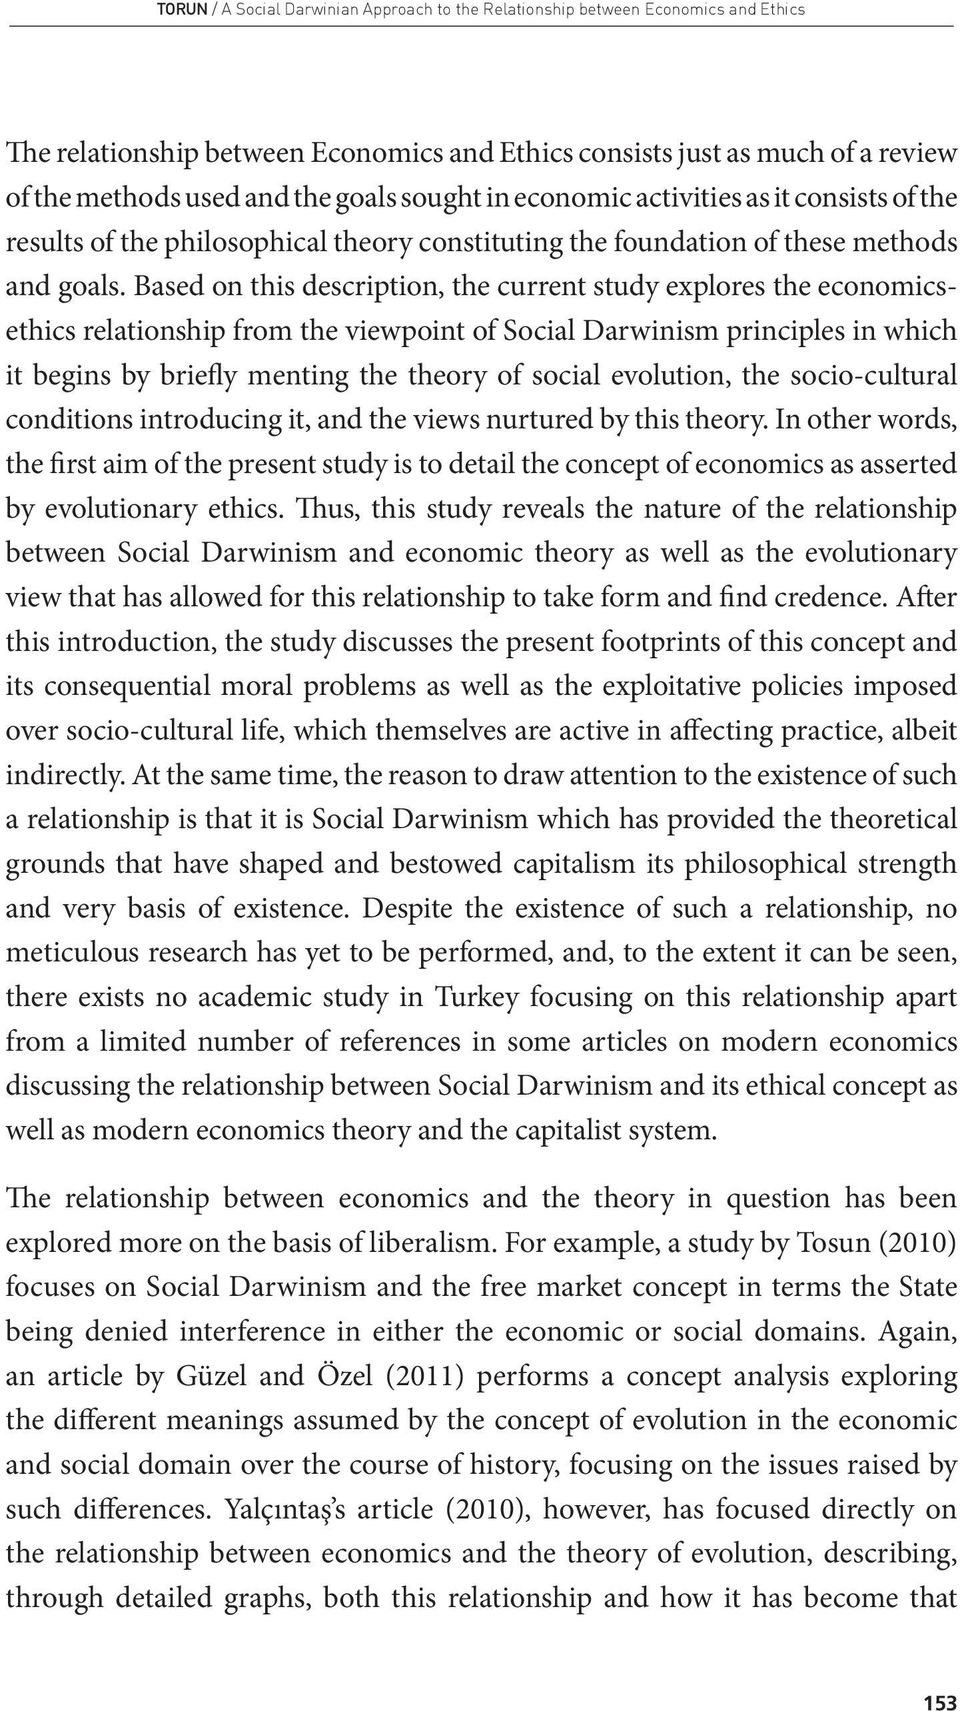 Based on this description, the current study explores the economicsethics relationship from the viewpoint of Social Darwinism principles in which it begins by briefly menting the theory of social